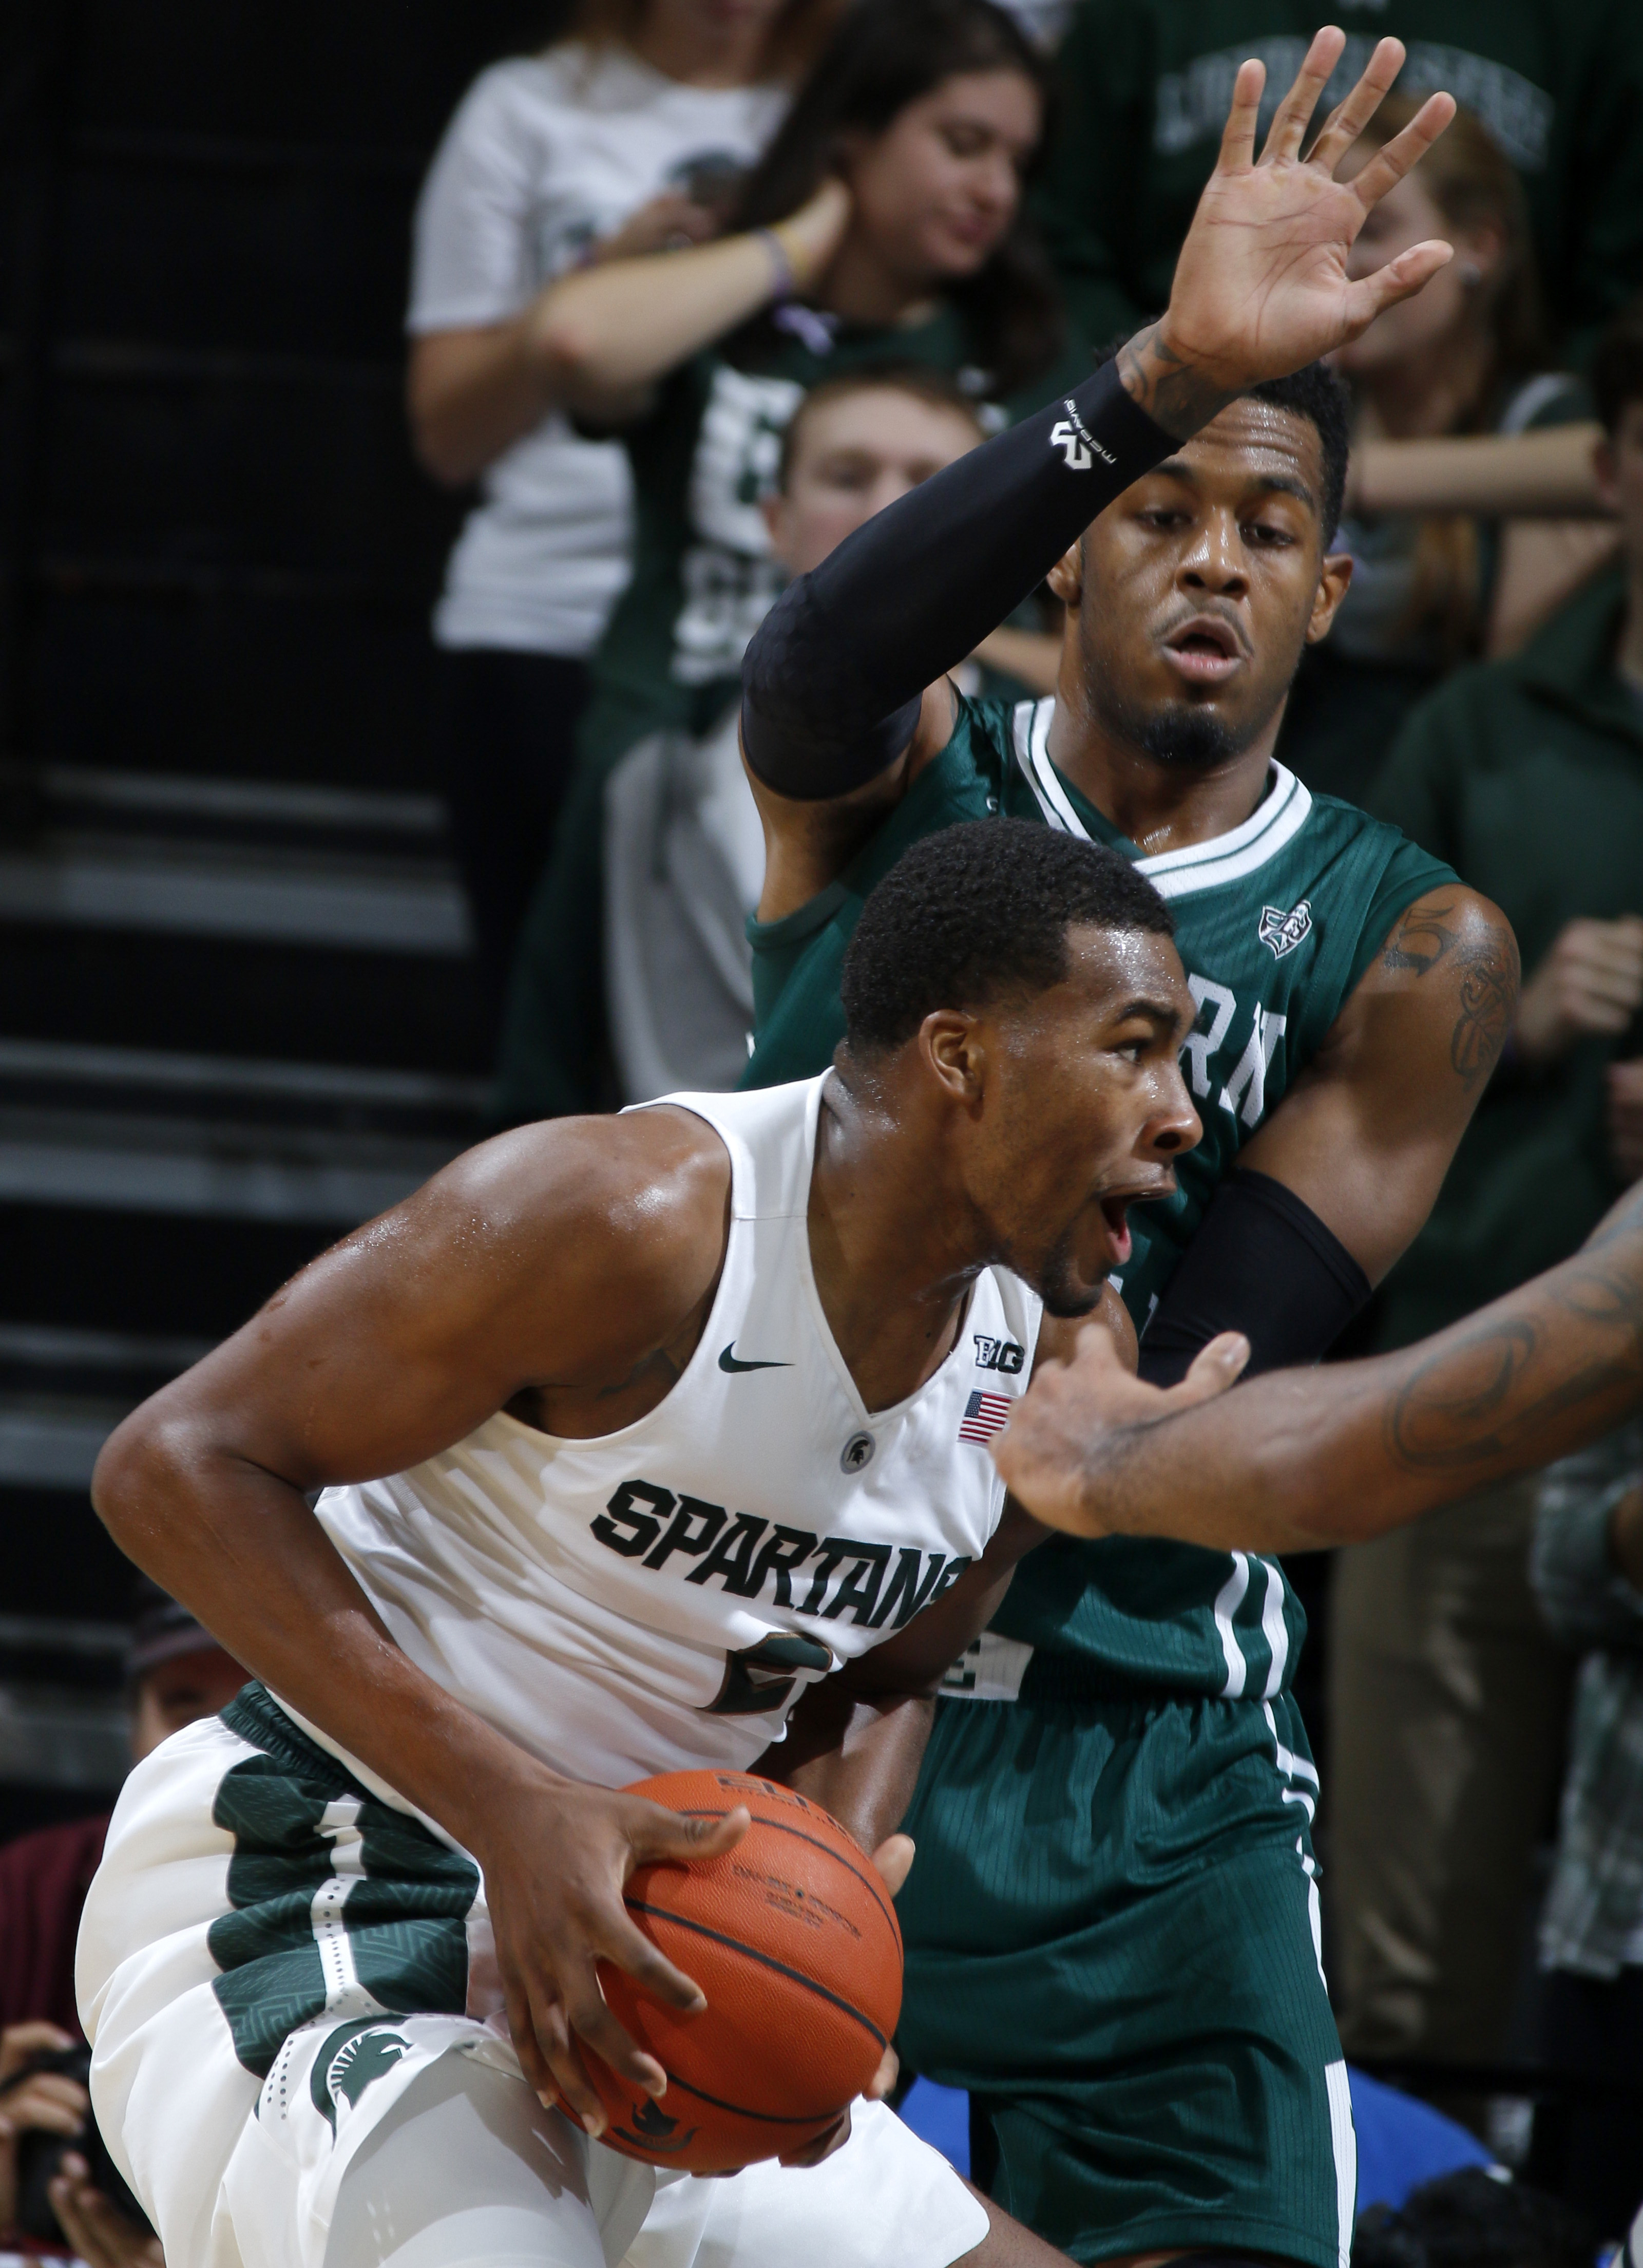 Michigan State's Javon Bess, left, maneuvers for a shot against Eastern Michigan's James Thompson during the first half of an NCAA college basketball game, Monday, Nov. 23, 2015, in East Lansing, Mich. (AP Photo/Al Goldis)